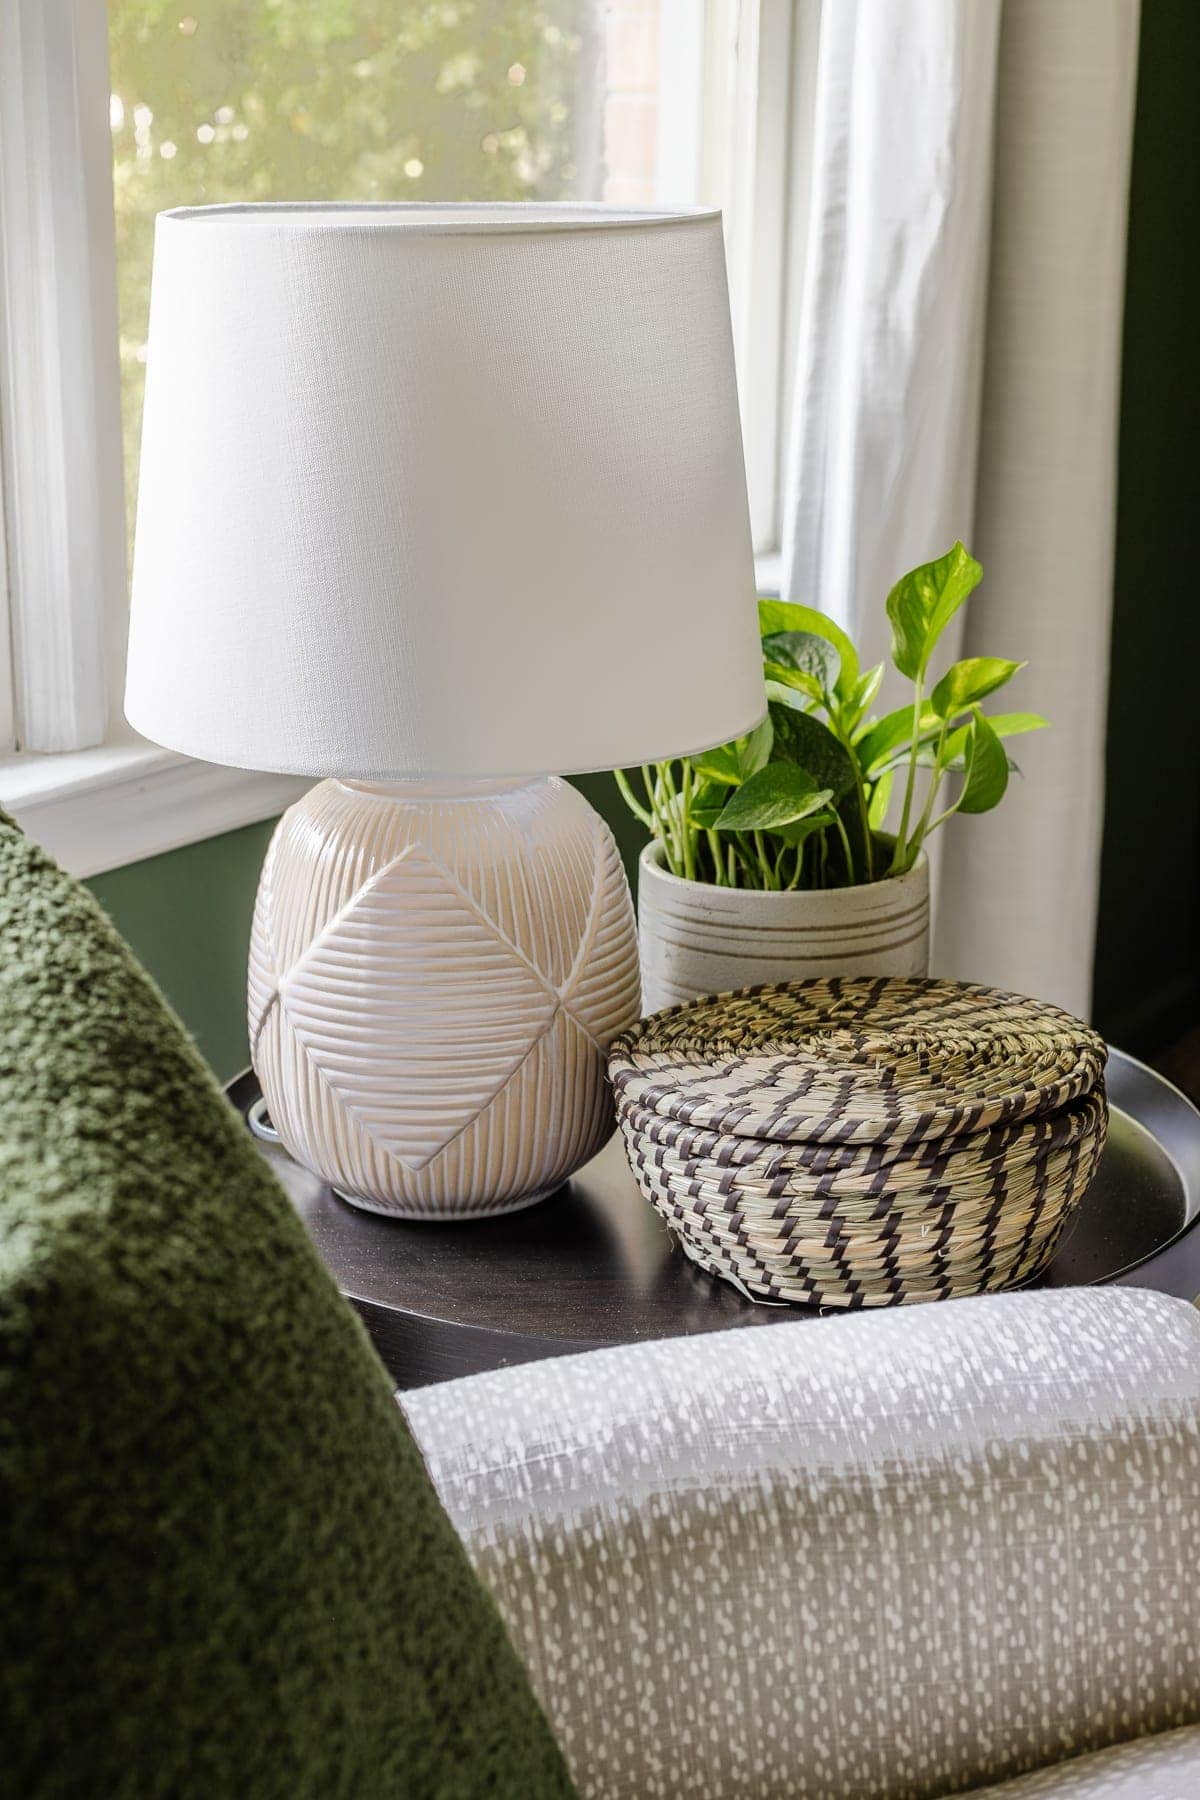 nursery side table with lamp, plant, and lidded basket for holding baby essentials